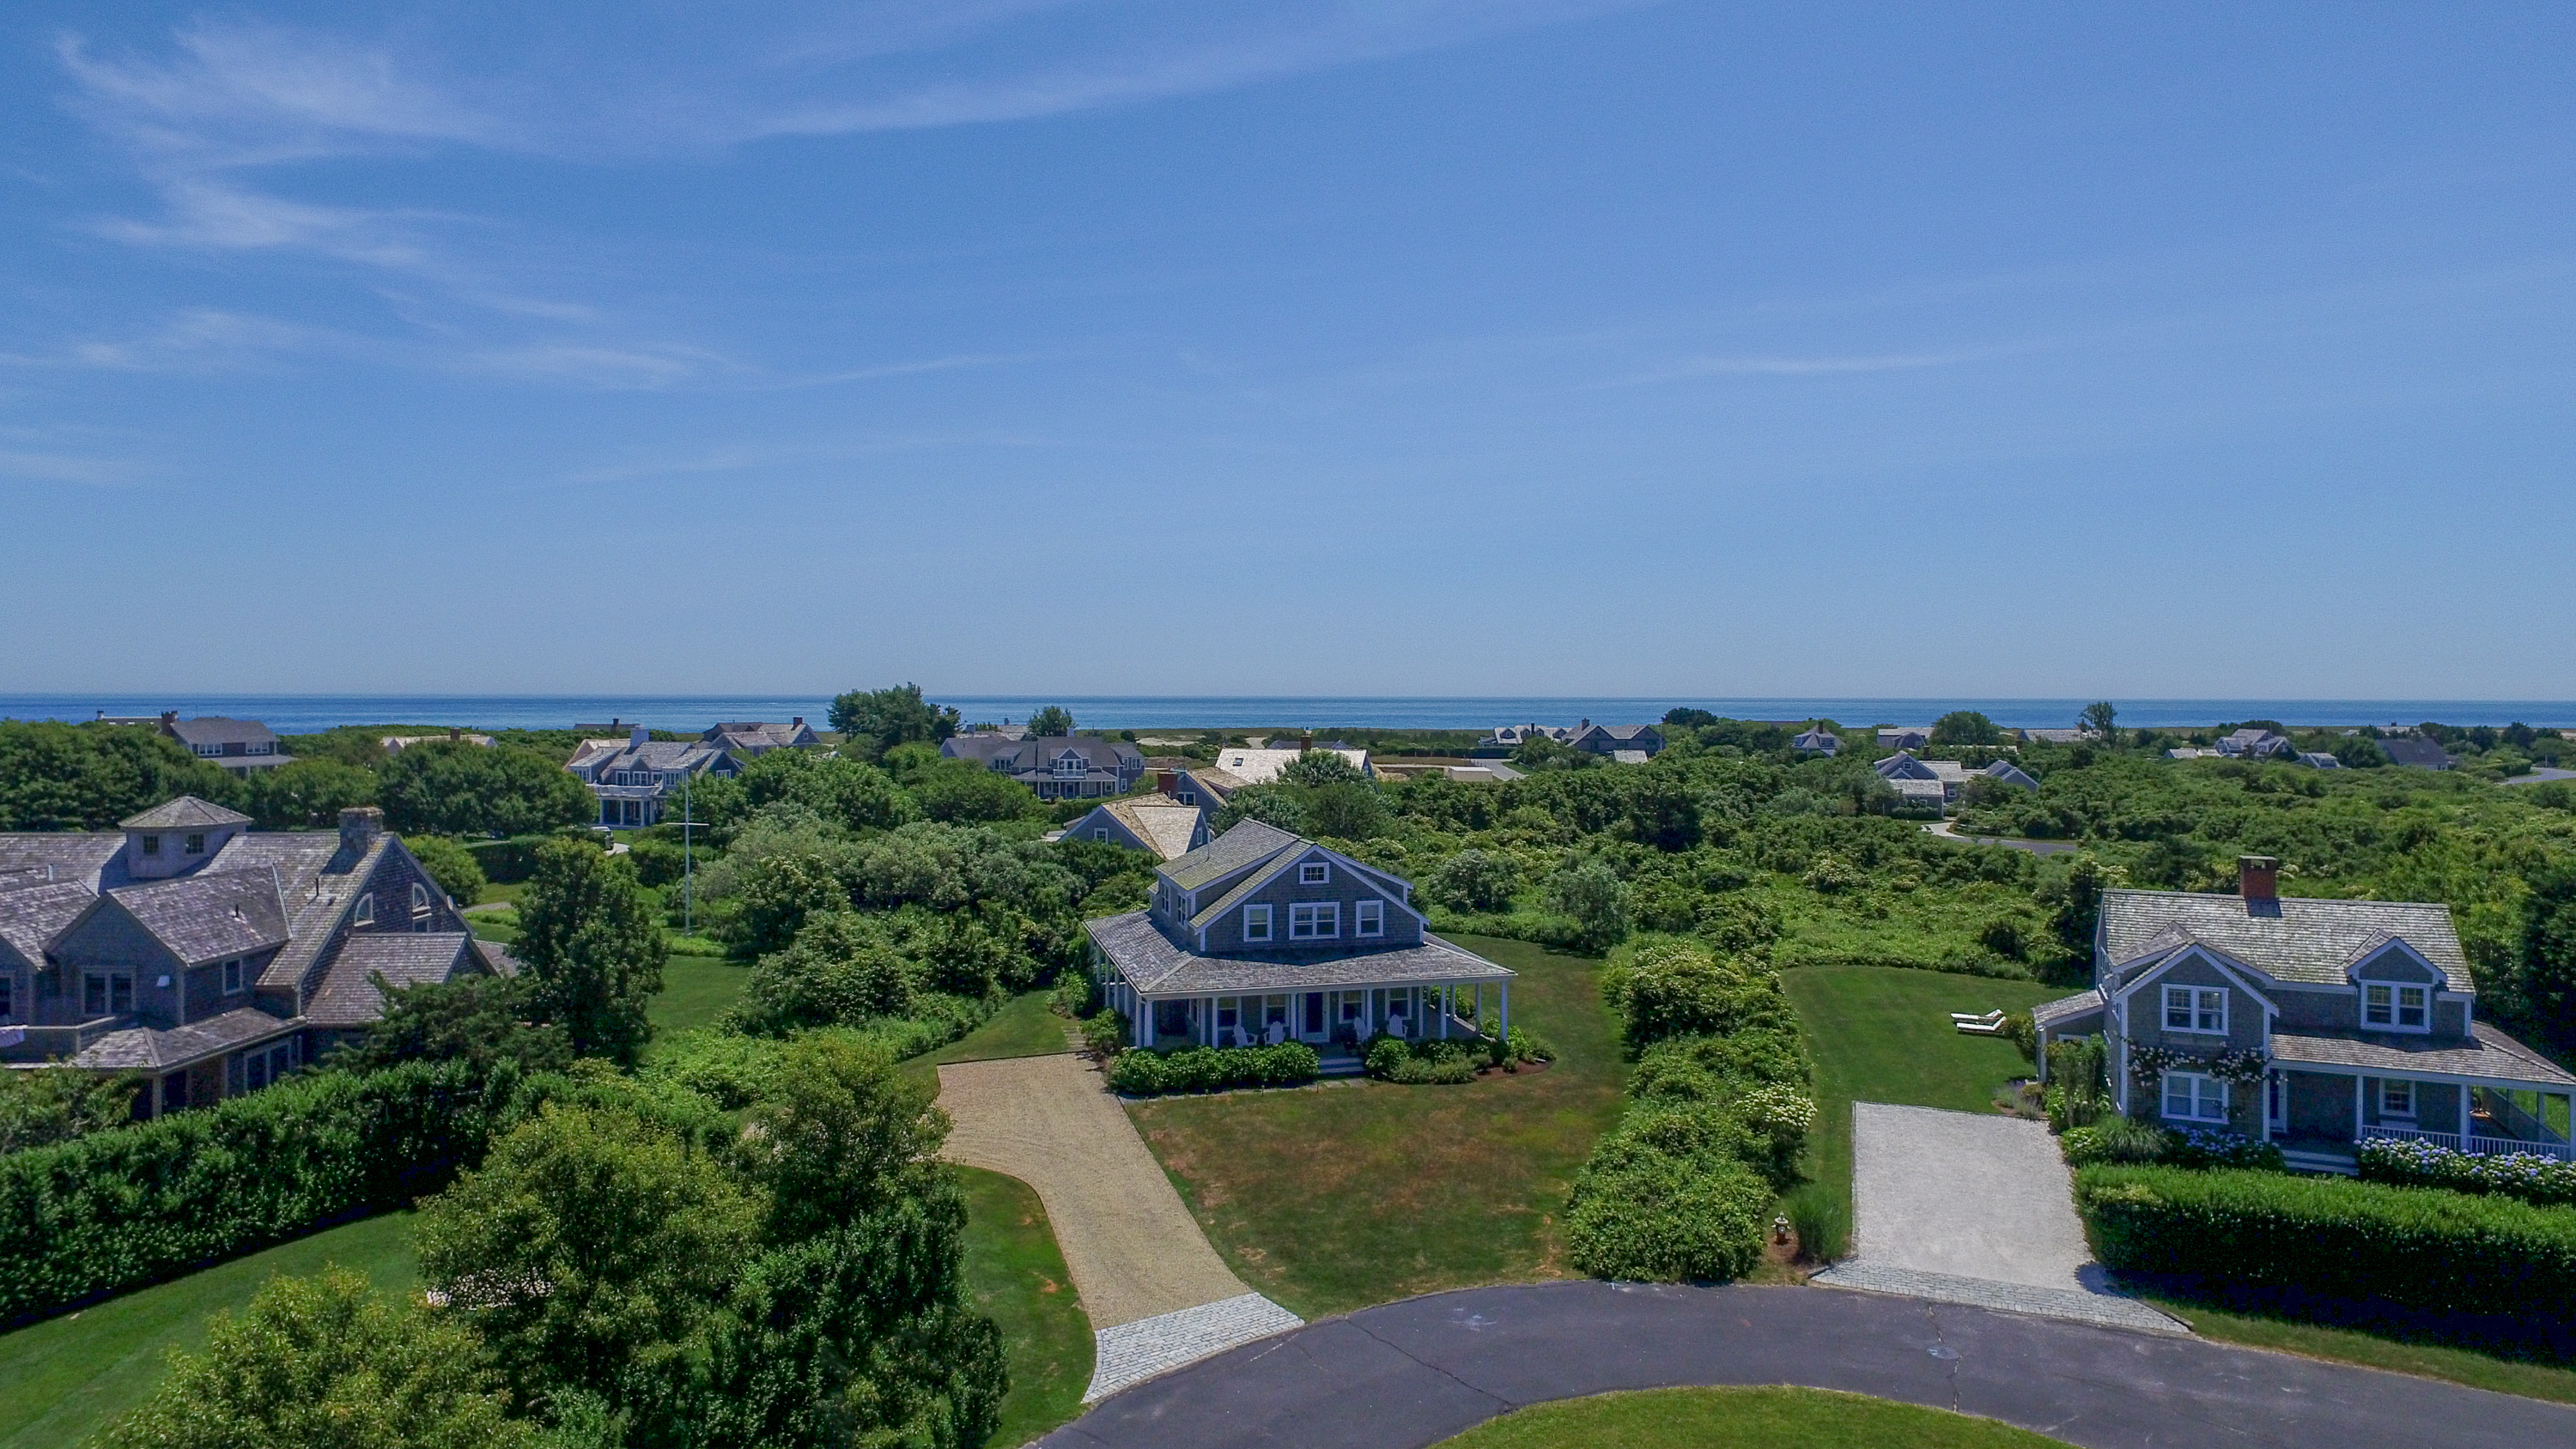 7 Packet Drive, Nantucket, MA, USA|Sconset | sale